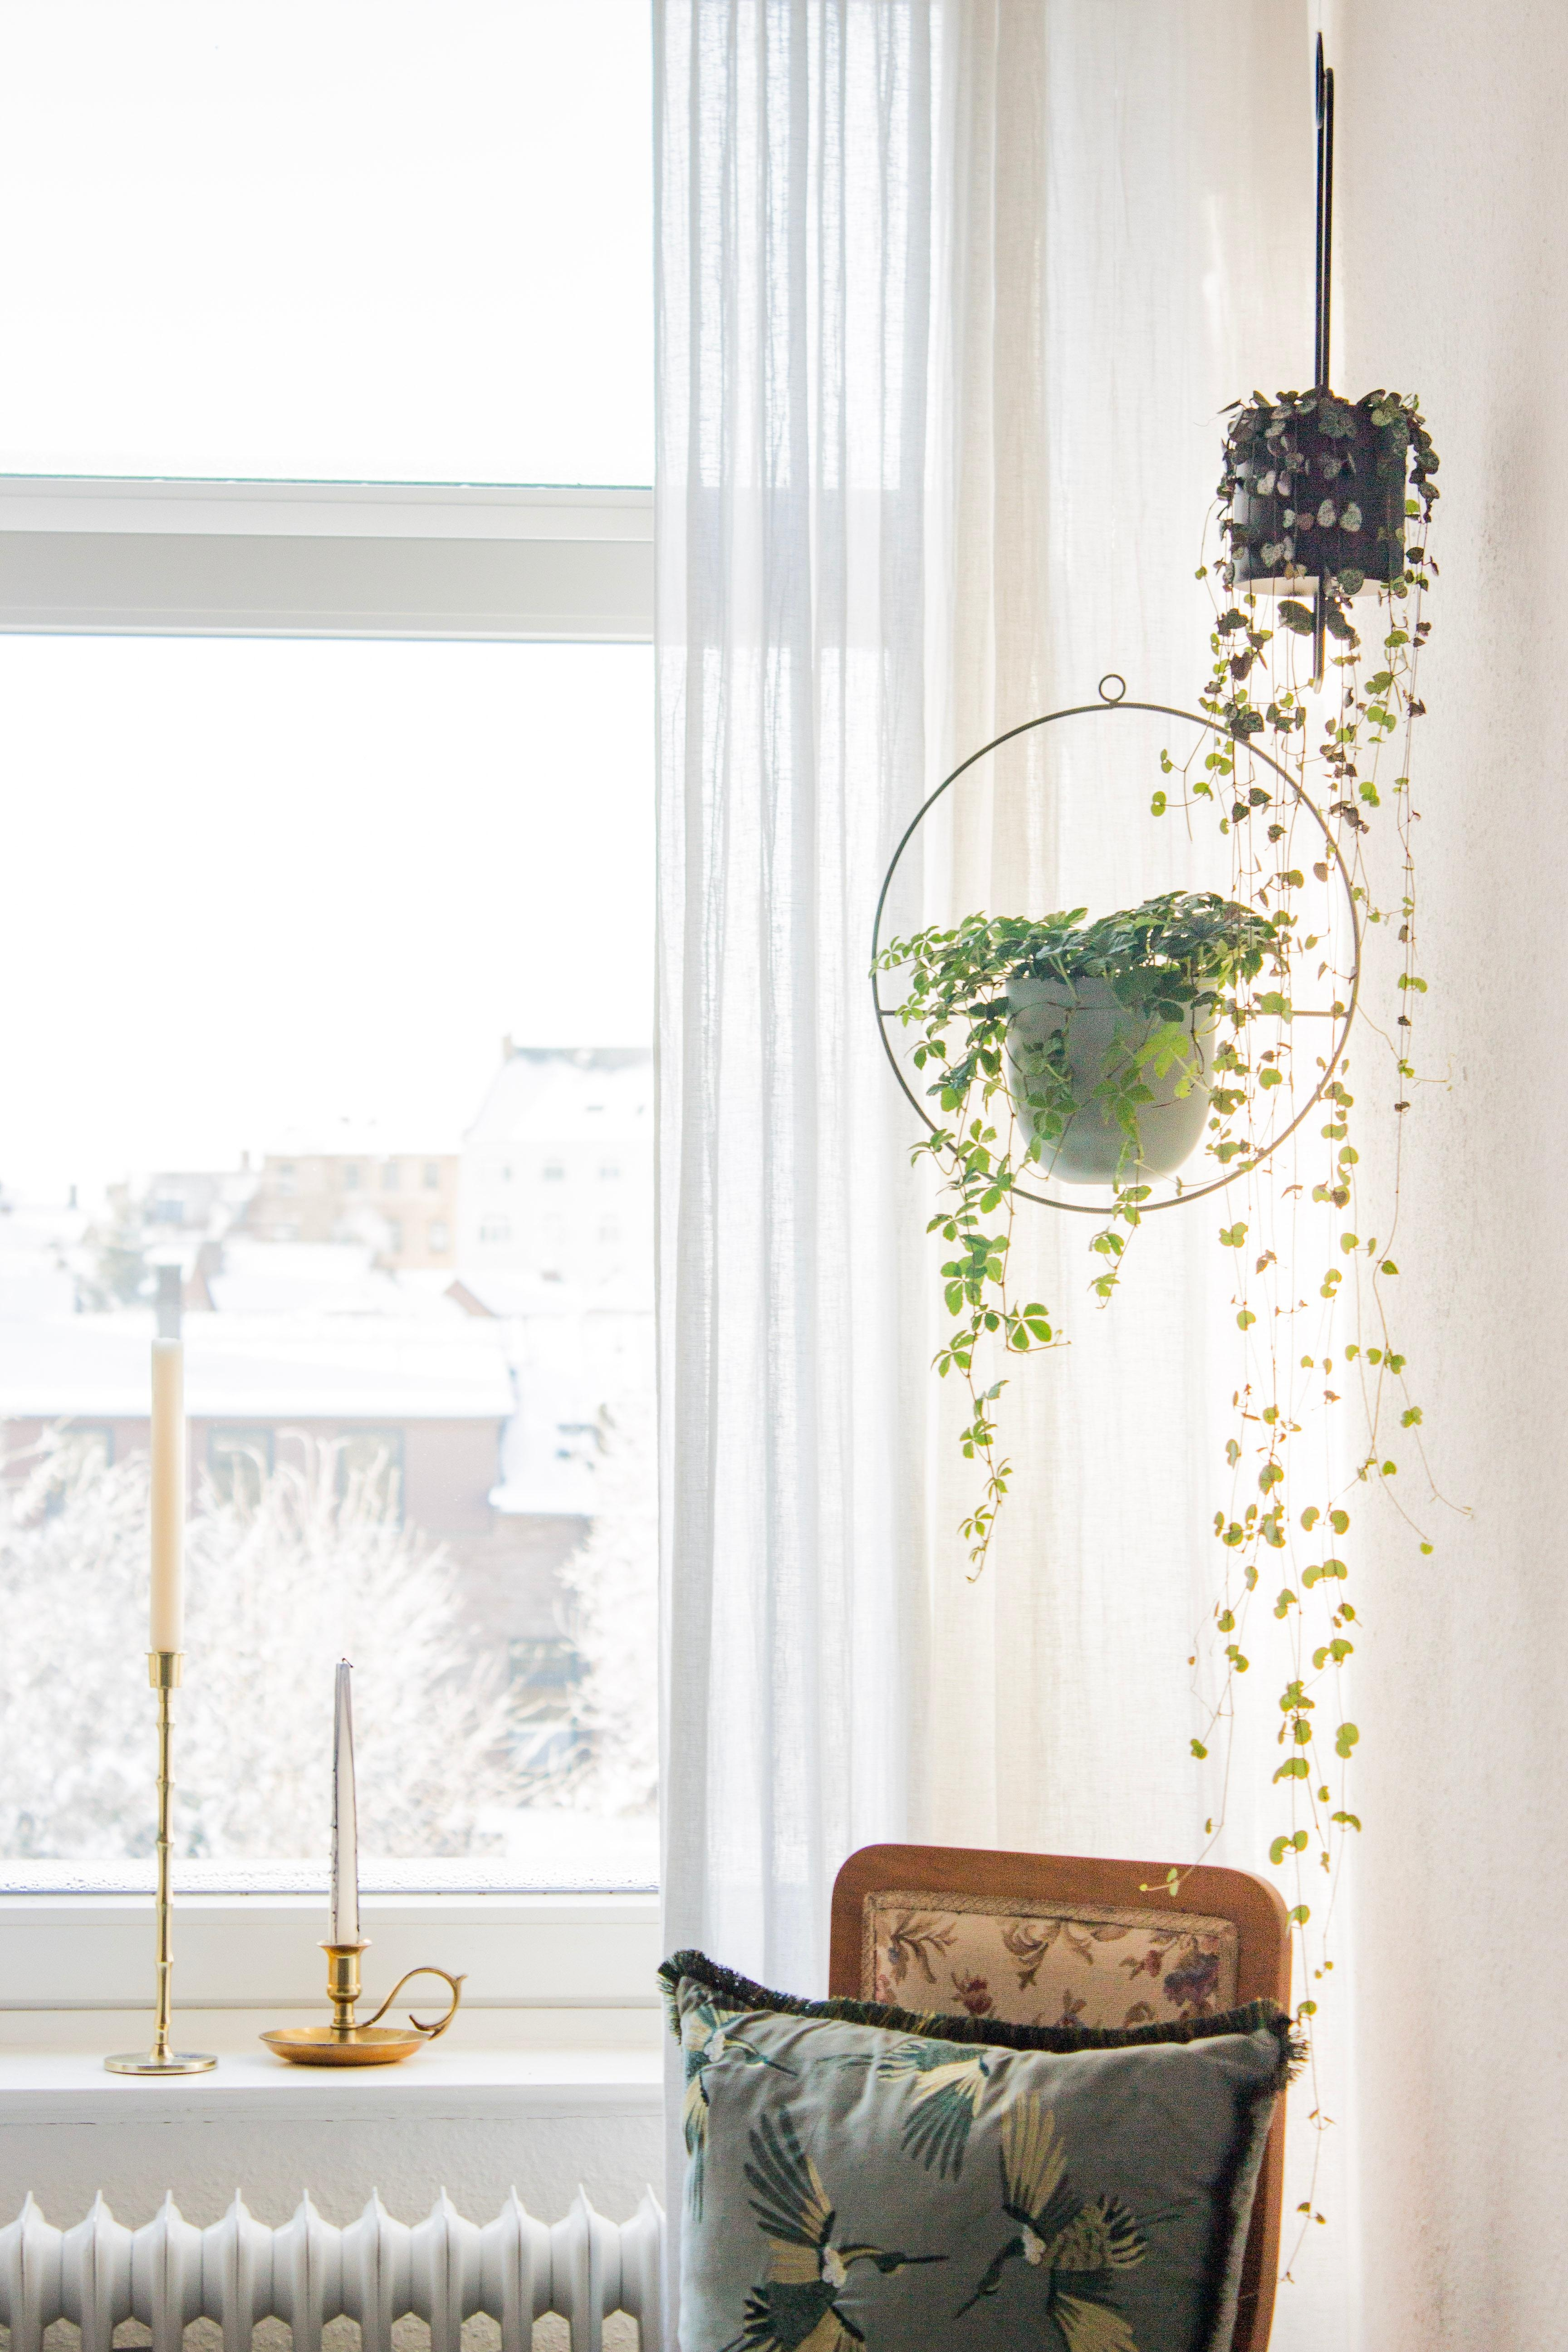 #pflanzenliebe #plantlove #sunshine #morningglory #bedroom #schlafzimmer #hangingplants